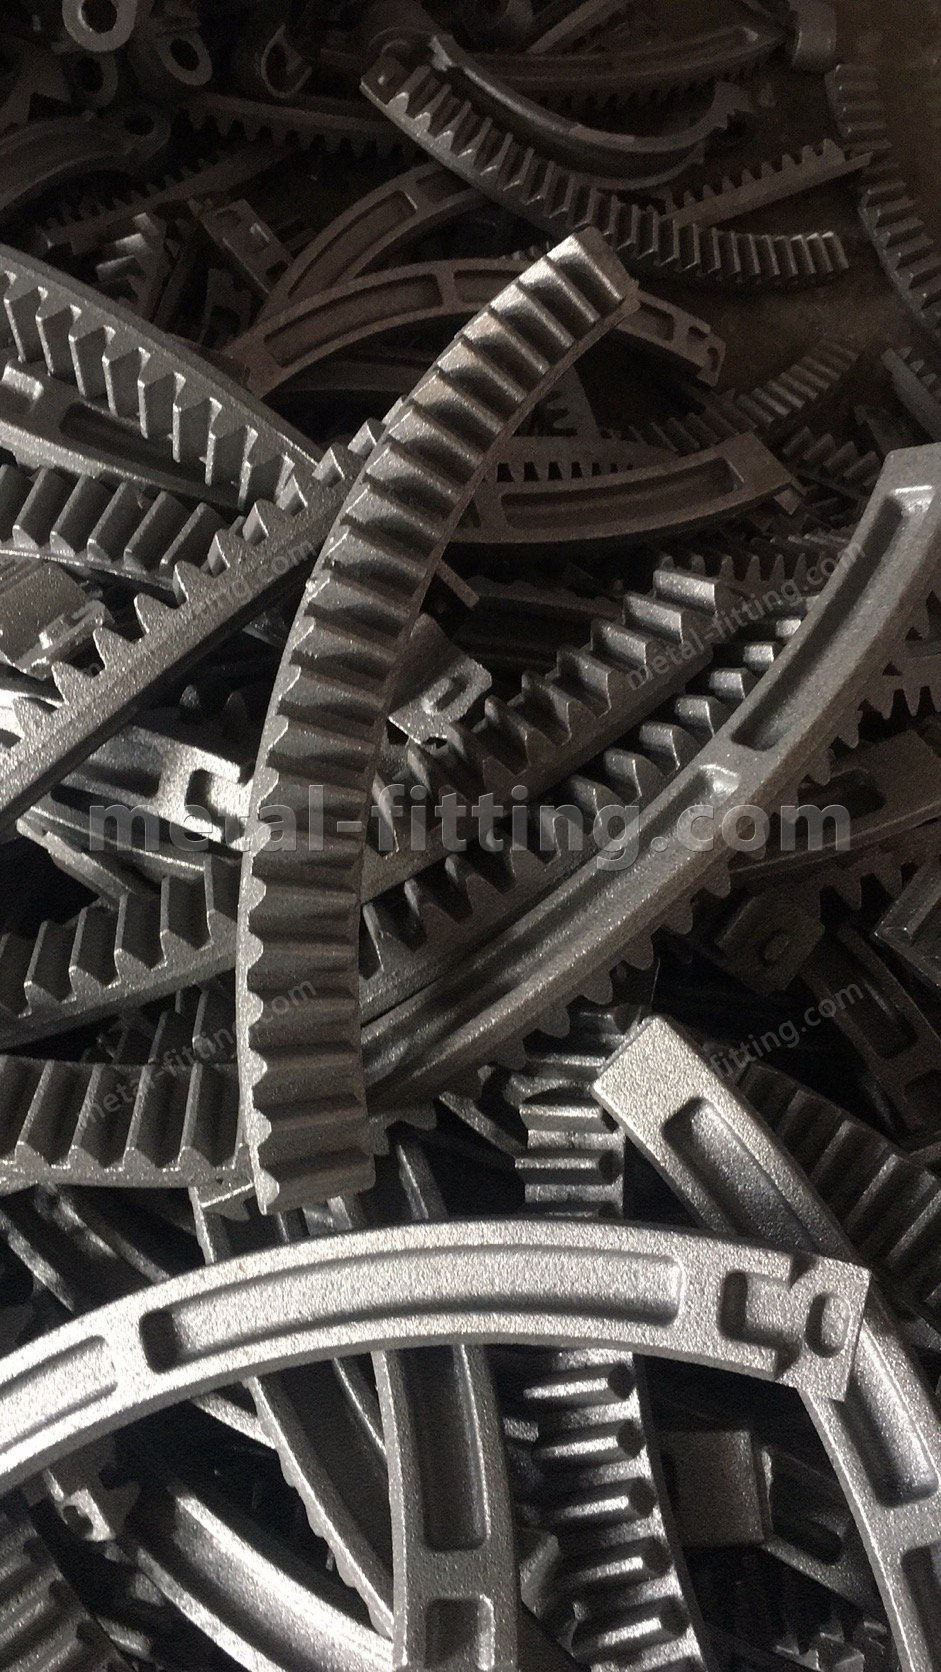 cement mixer cast iron ring gear,metal concrete mixer gear and pinion set ,spinning gear ring-cd70f599db2968d414dc226f4a374c8